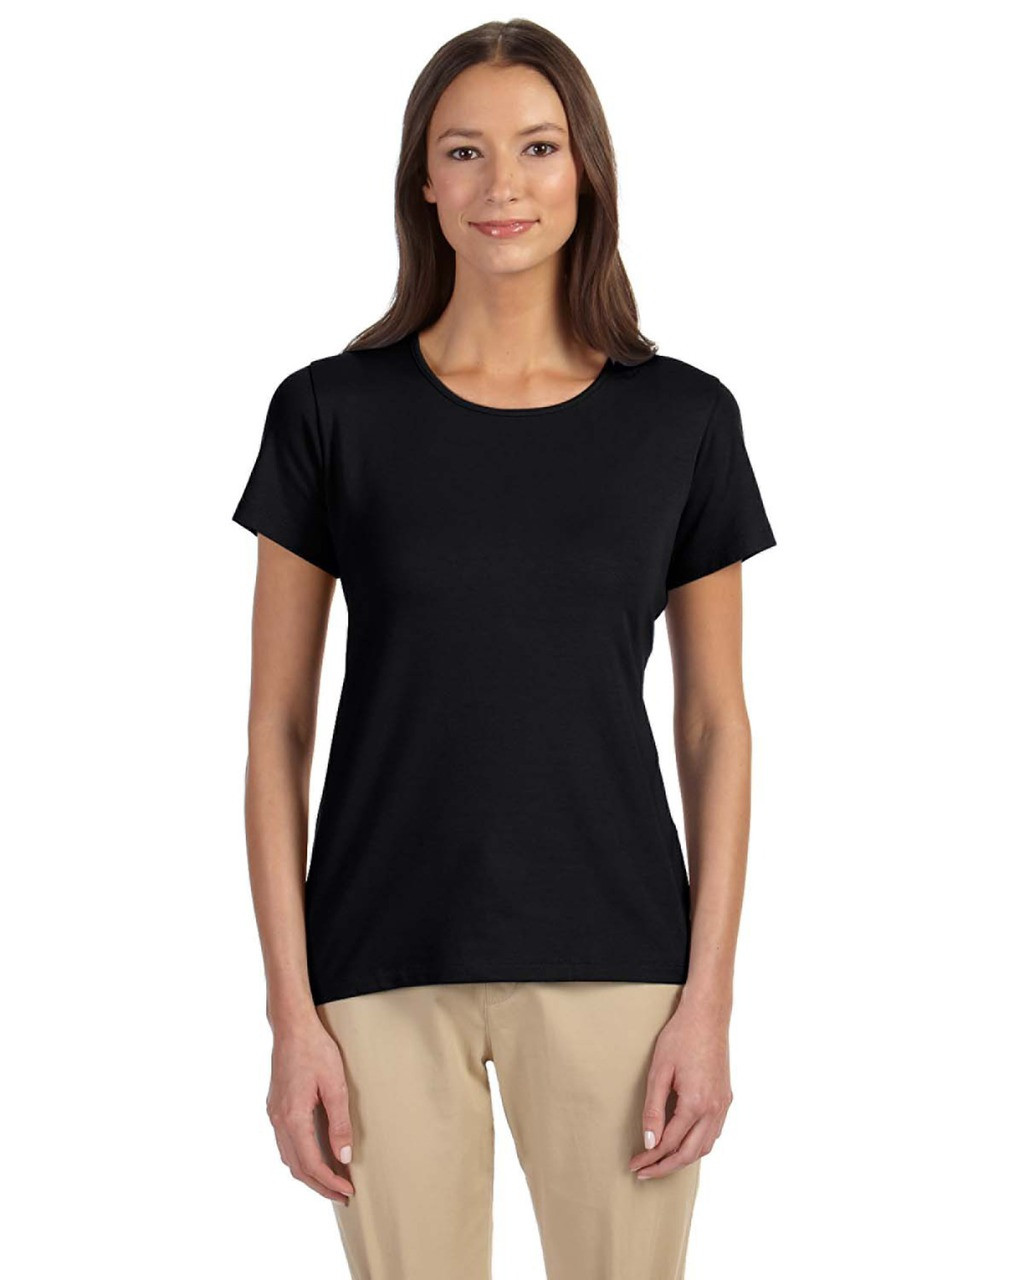 Black - DP182W Devon & Jones Ladies' Perfect Fit™ Shell T-Shirt | Blankclothing.ca